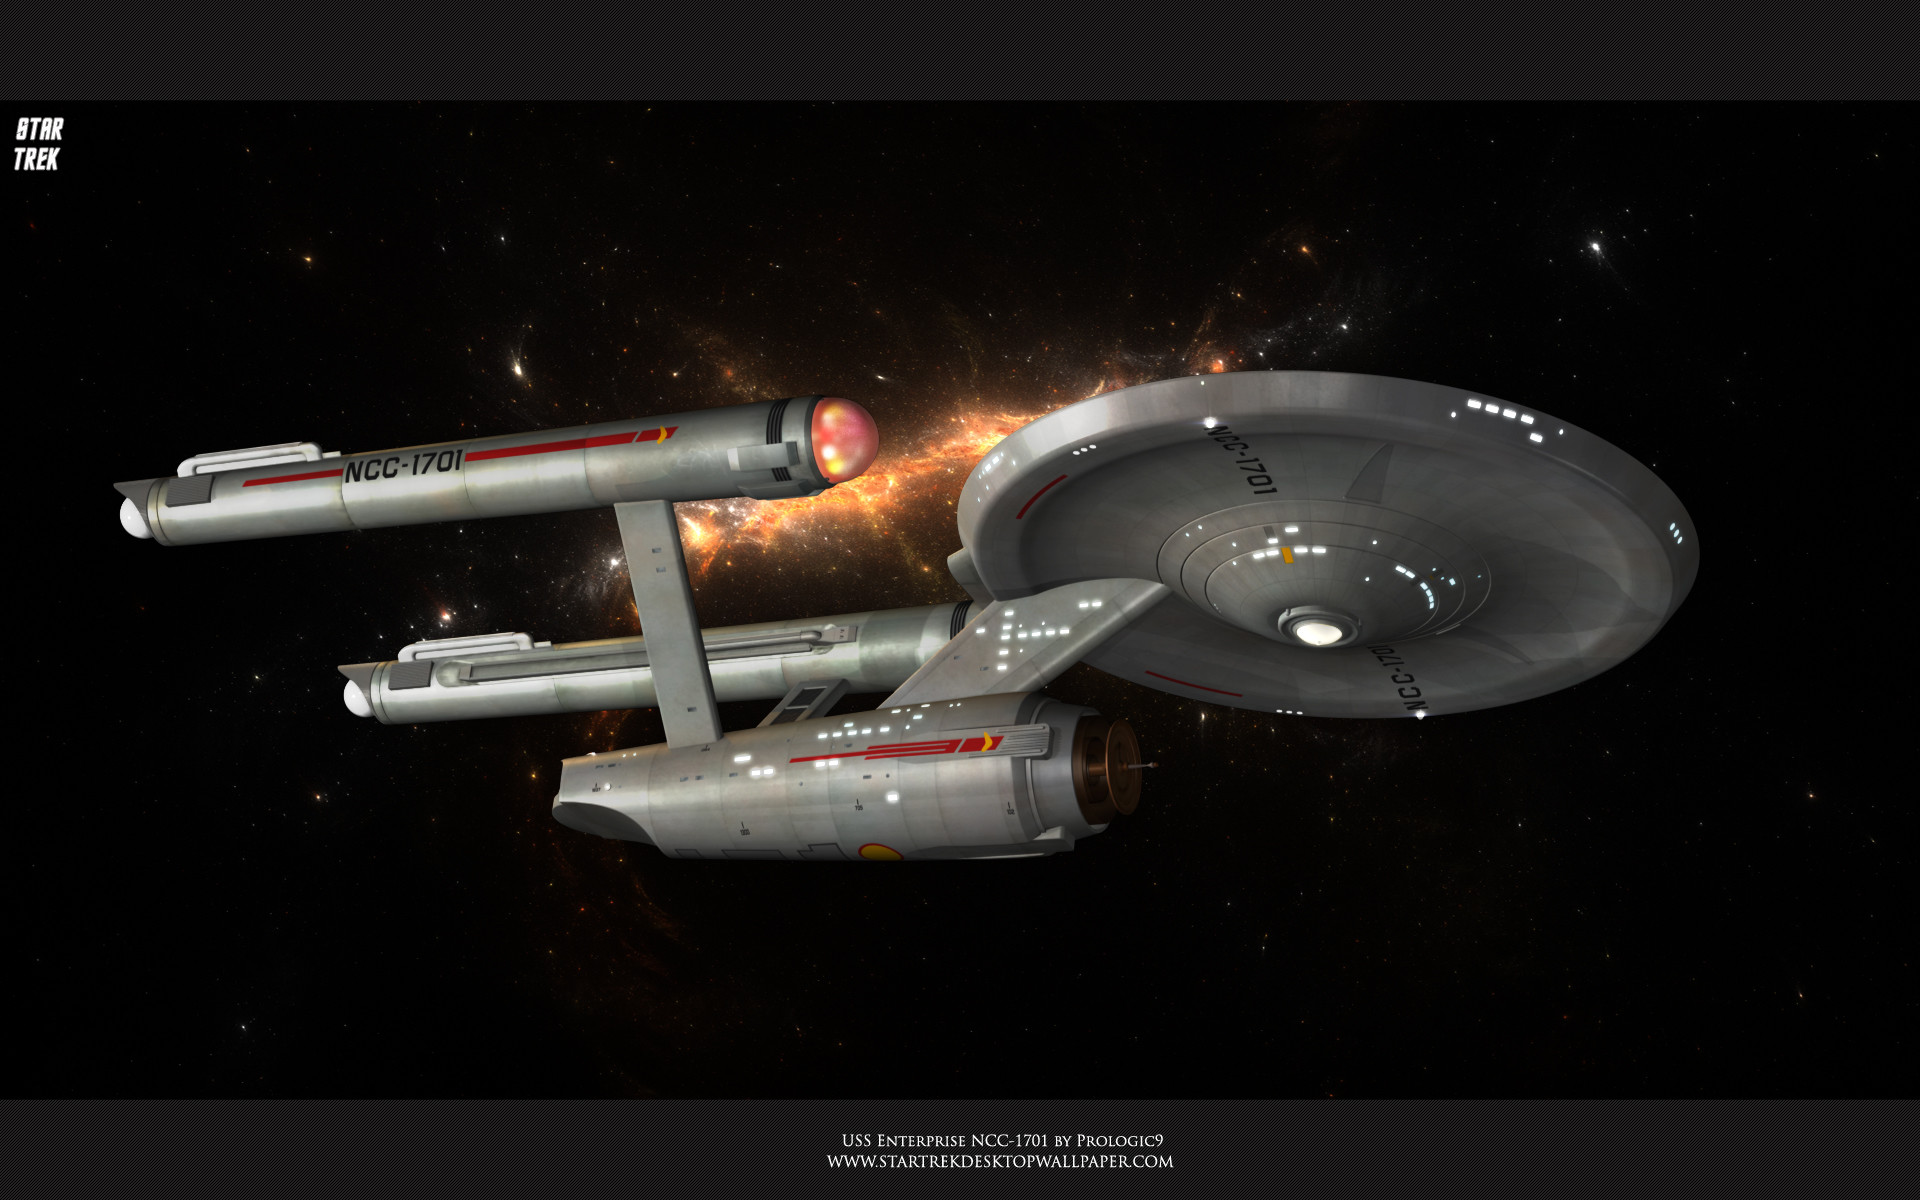 1920x1200 Sci Fi - Star Trek Star Trek: The Original Series Spaceship Wallpaper